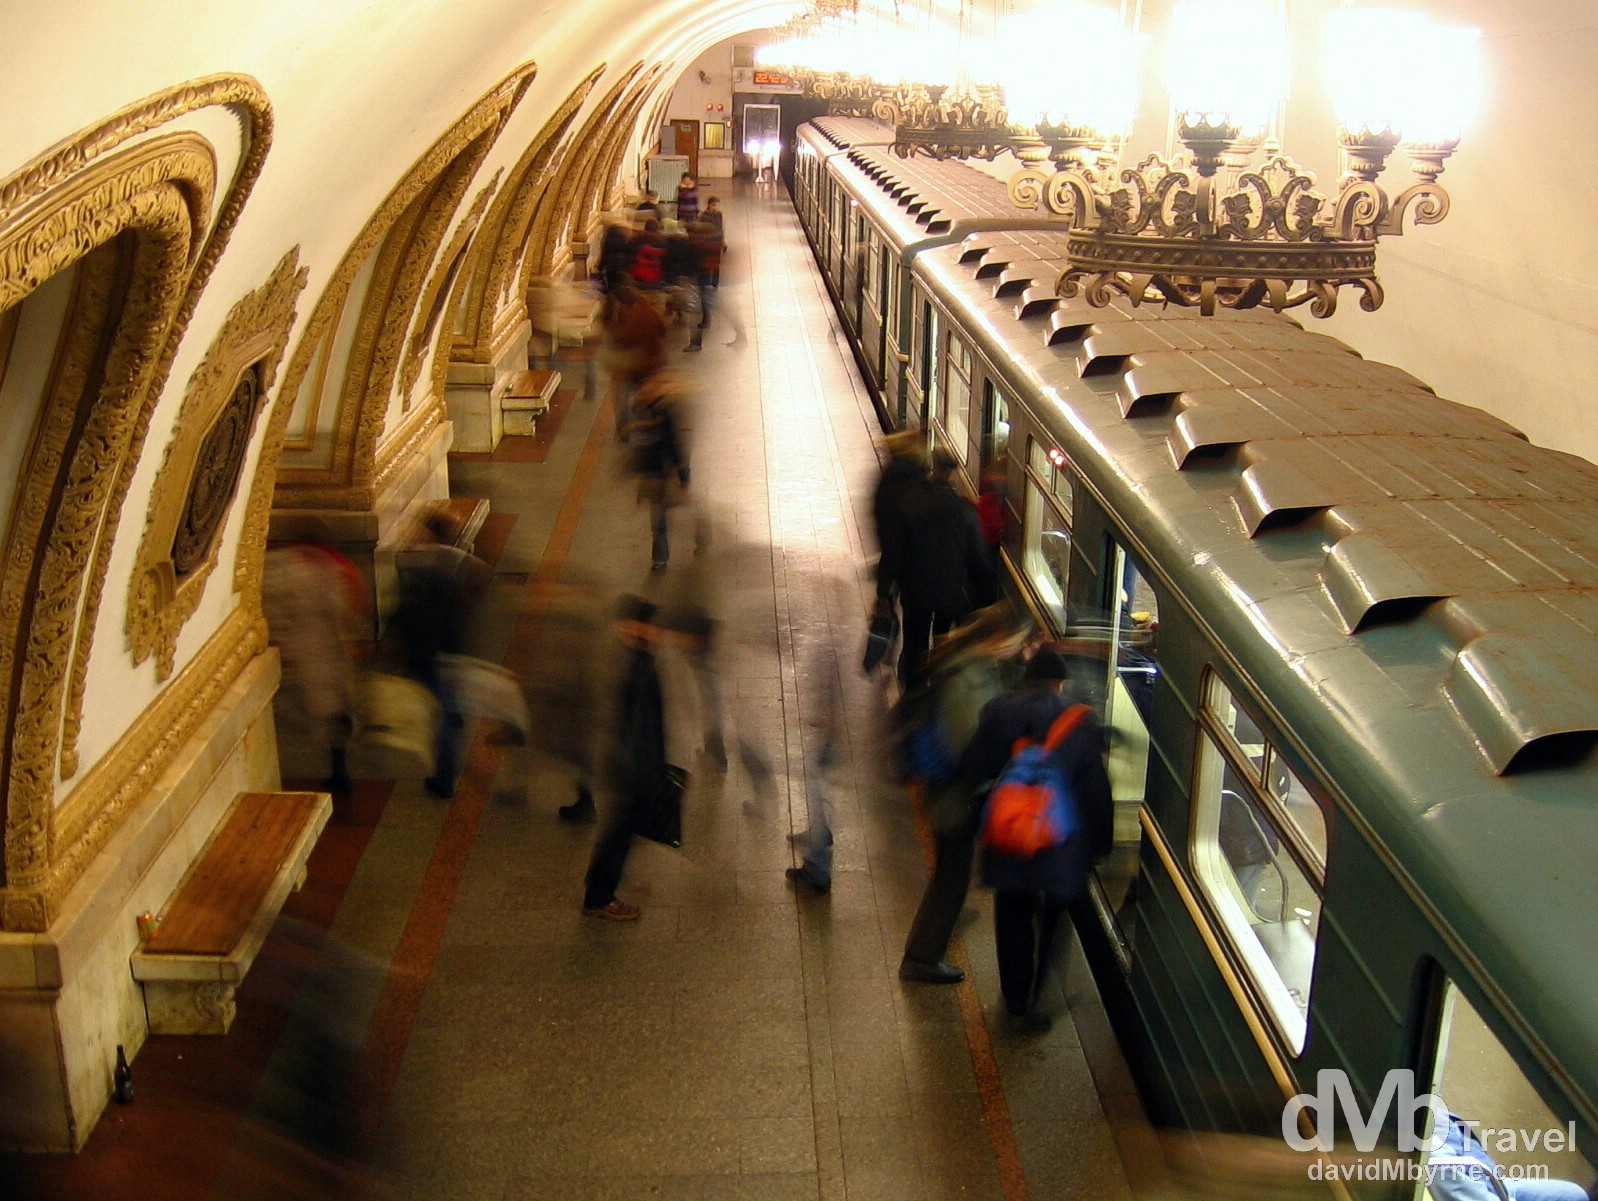 Kievskaya subway station, Moscow, Russia, as captured from an elevated overpass connecting neighbouring platforms. February 25th 2006.